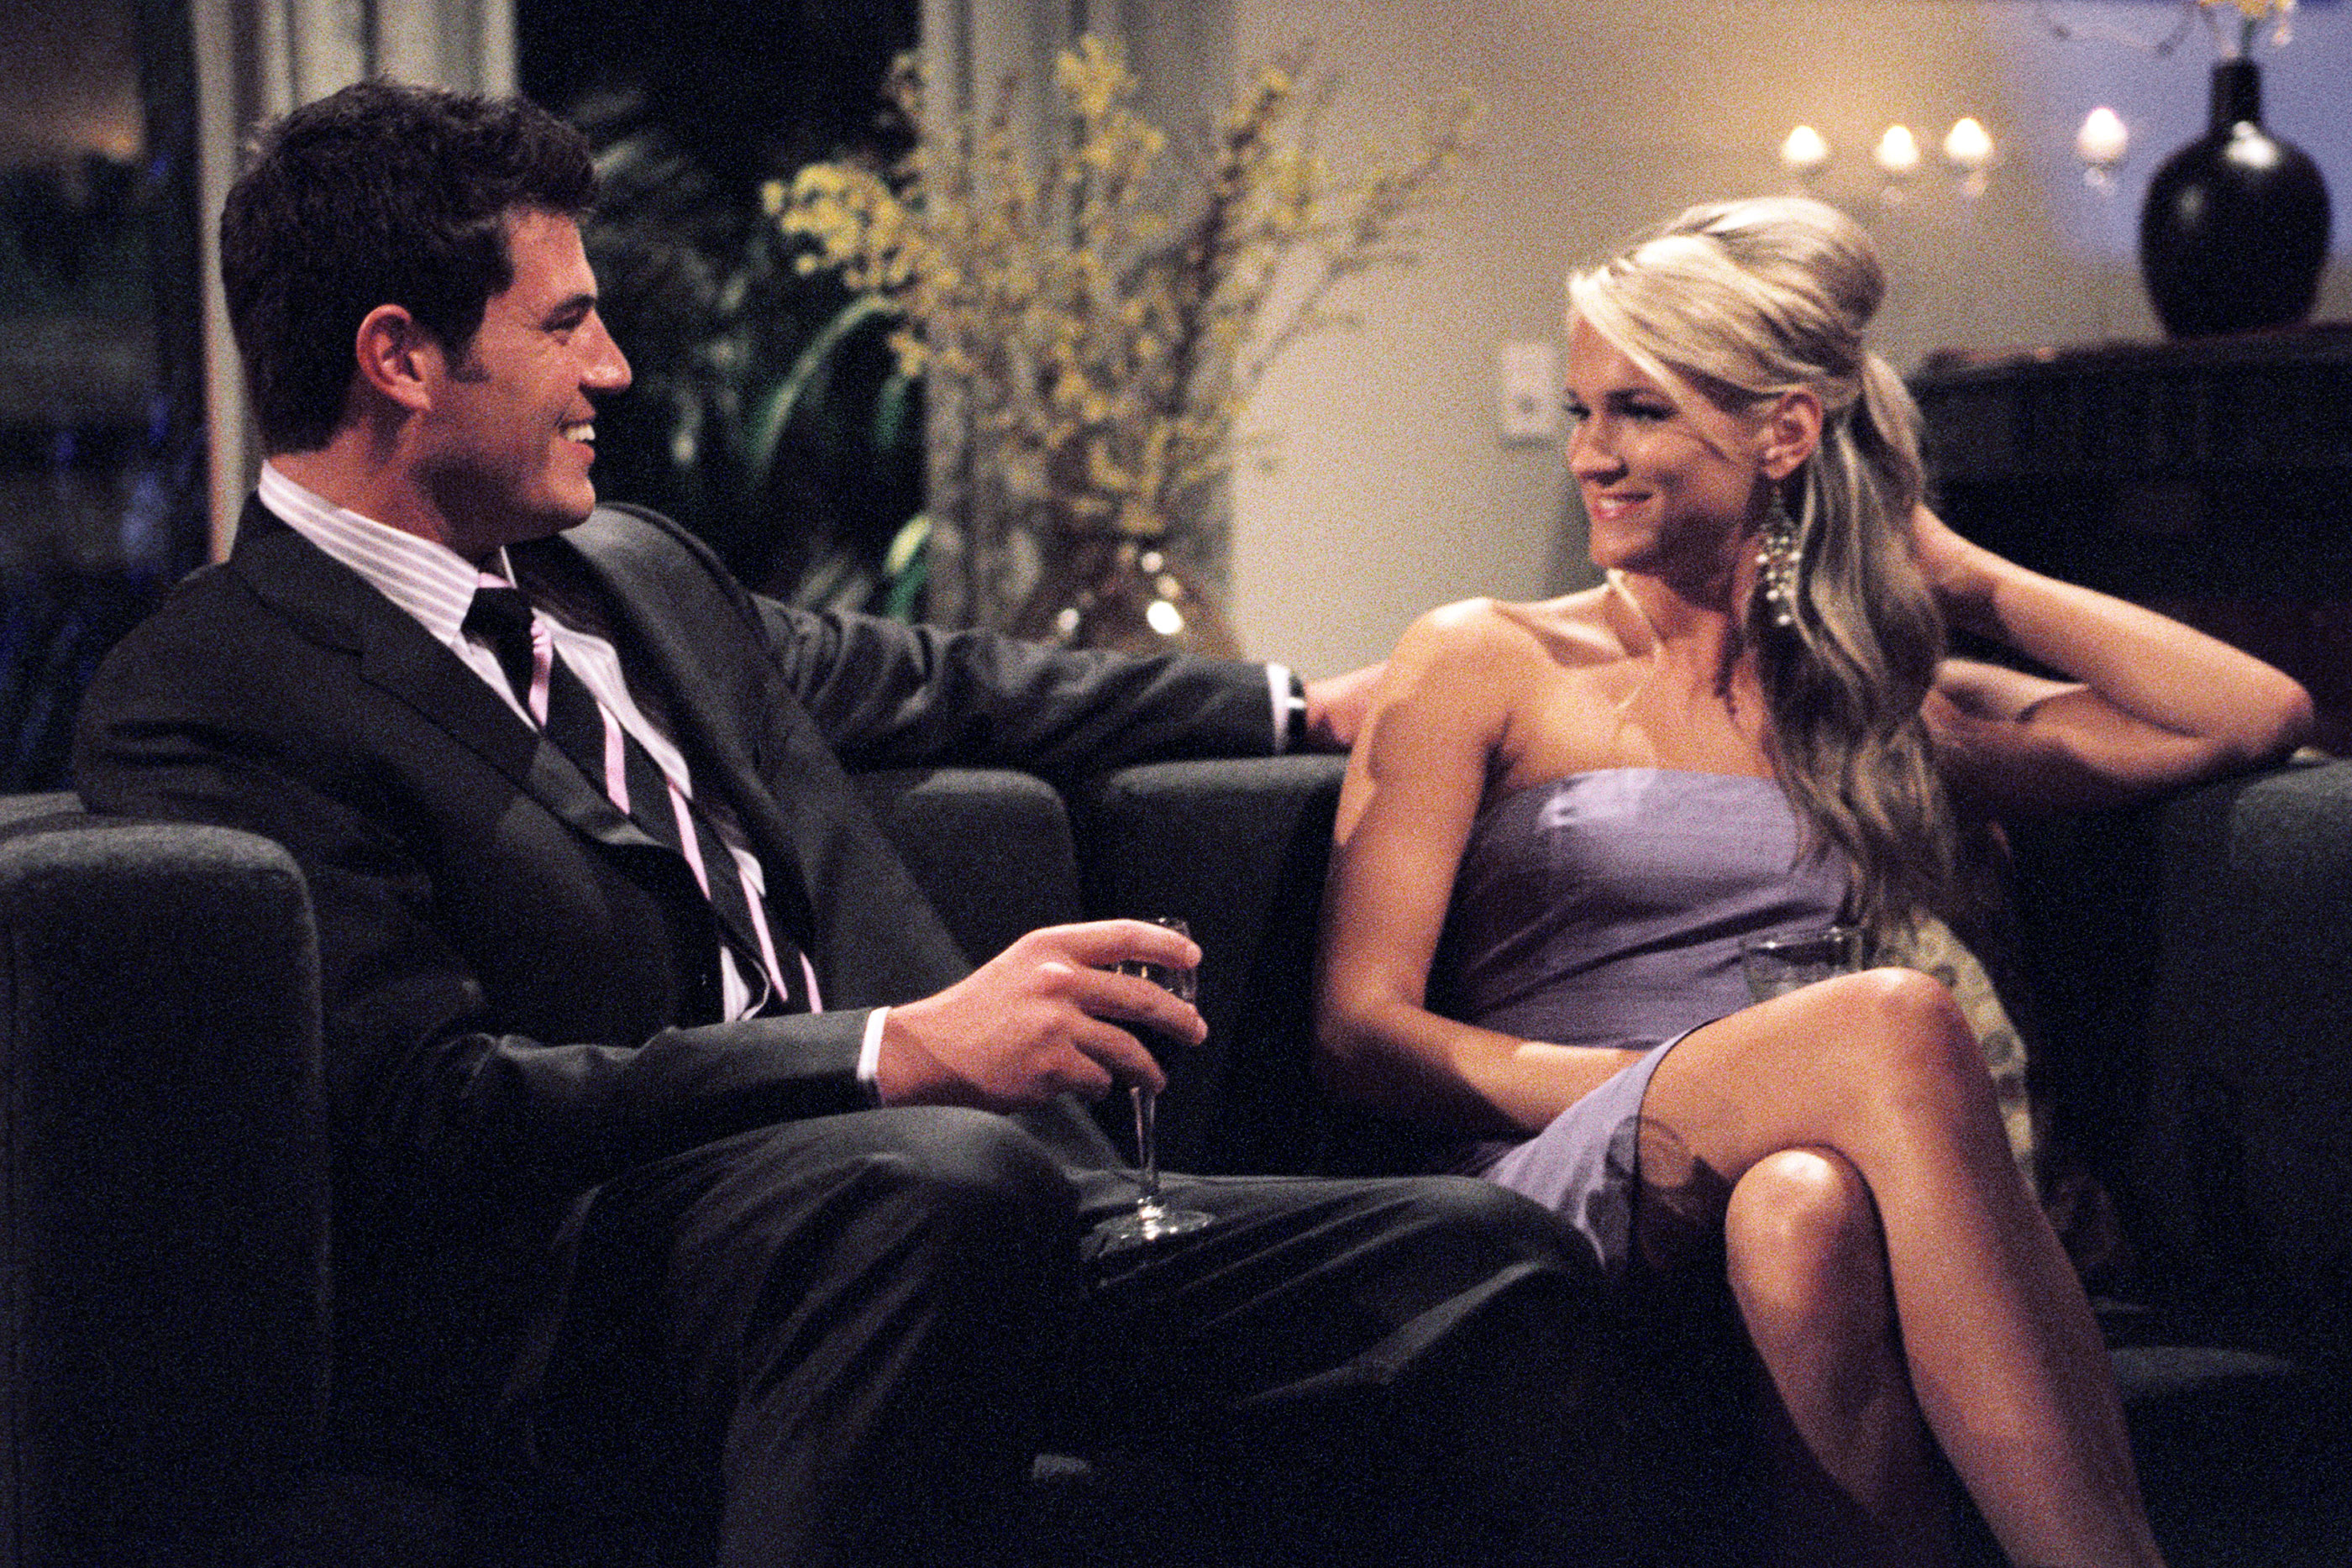 """THE BACHELOR - """"Episode 504"""" - The women are shocked when they learn the identity of Jesse's spy! As Jenny S. returns to the house to choose three women for special one-on-one dates with Jesse, she fears the worst. How will the women react? Can they forgive her betrayal or will they turn on Jesse? How will Jesse explain? Will Trish recover from the revealing game of """"I Never""""? Will her past be revealed to Jesse? After Jenny S. decides on her favorites, Jesse goes on three individual dates, including a date to the Rose Bowl, a romantic date on a yacht in Newport Beach, CA, and a special date that involves doing all of the woman's favorite things. He also goes on a three-person """"Bollywood""""-themed group date, complete with elephant rides. At the end of the episode, Jesse must present only four roses to the six remaining women, on """"The Bachelor,"""" WEDNESDAY, APRIL 28 (9:00-10:00 p.m., ET), on the ABC Television Network."""